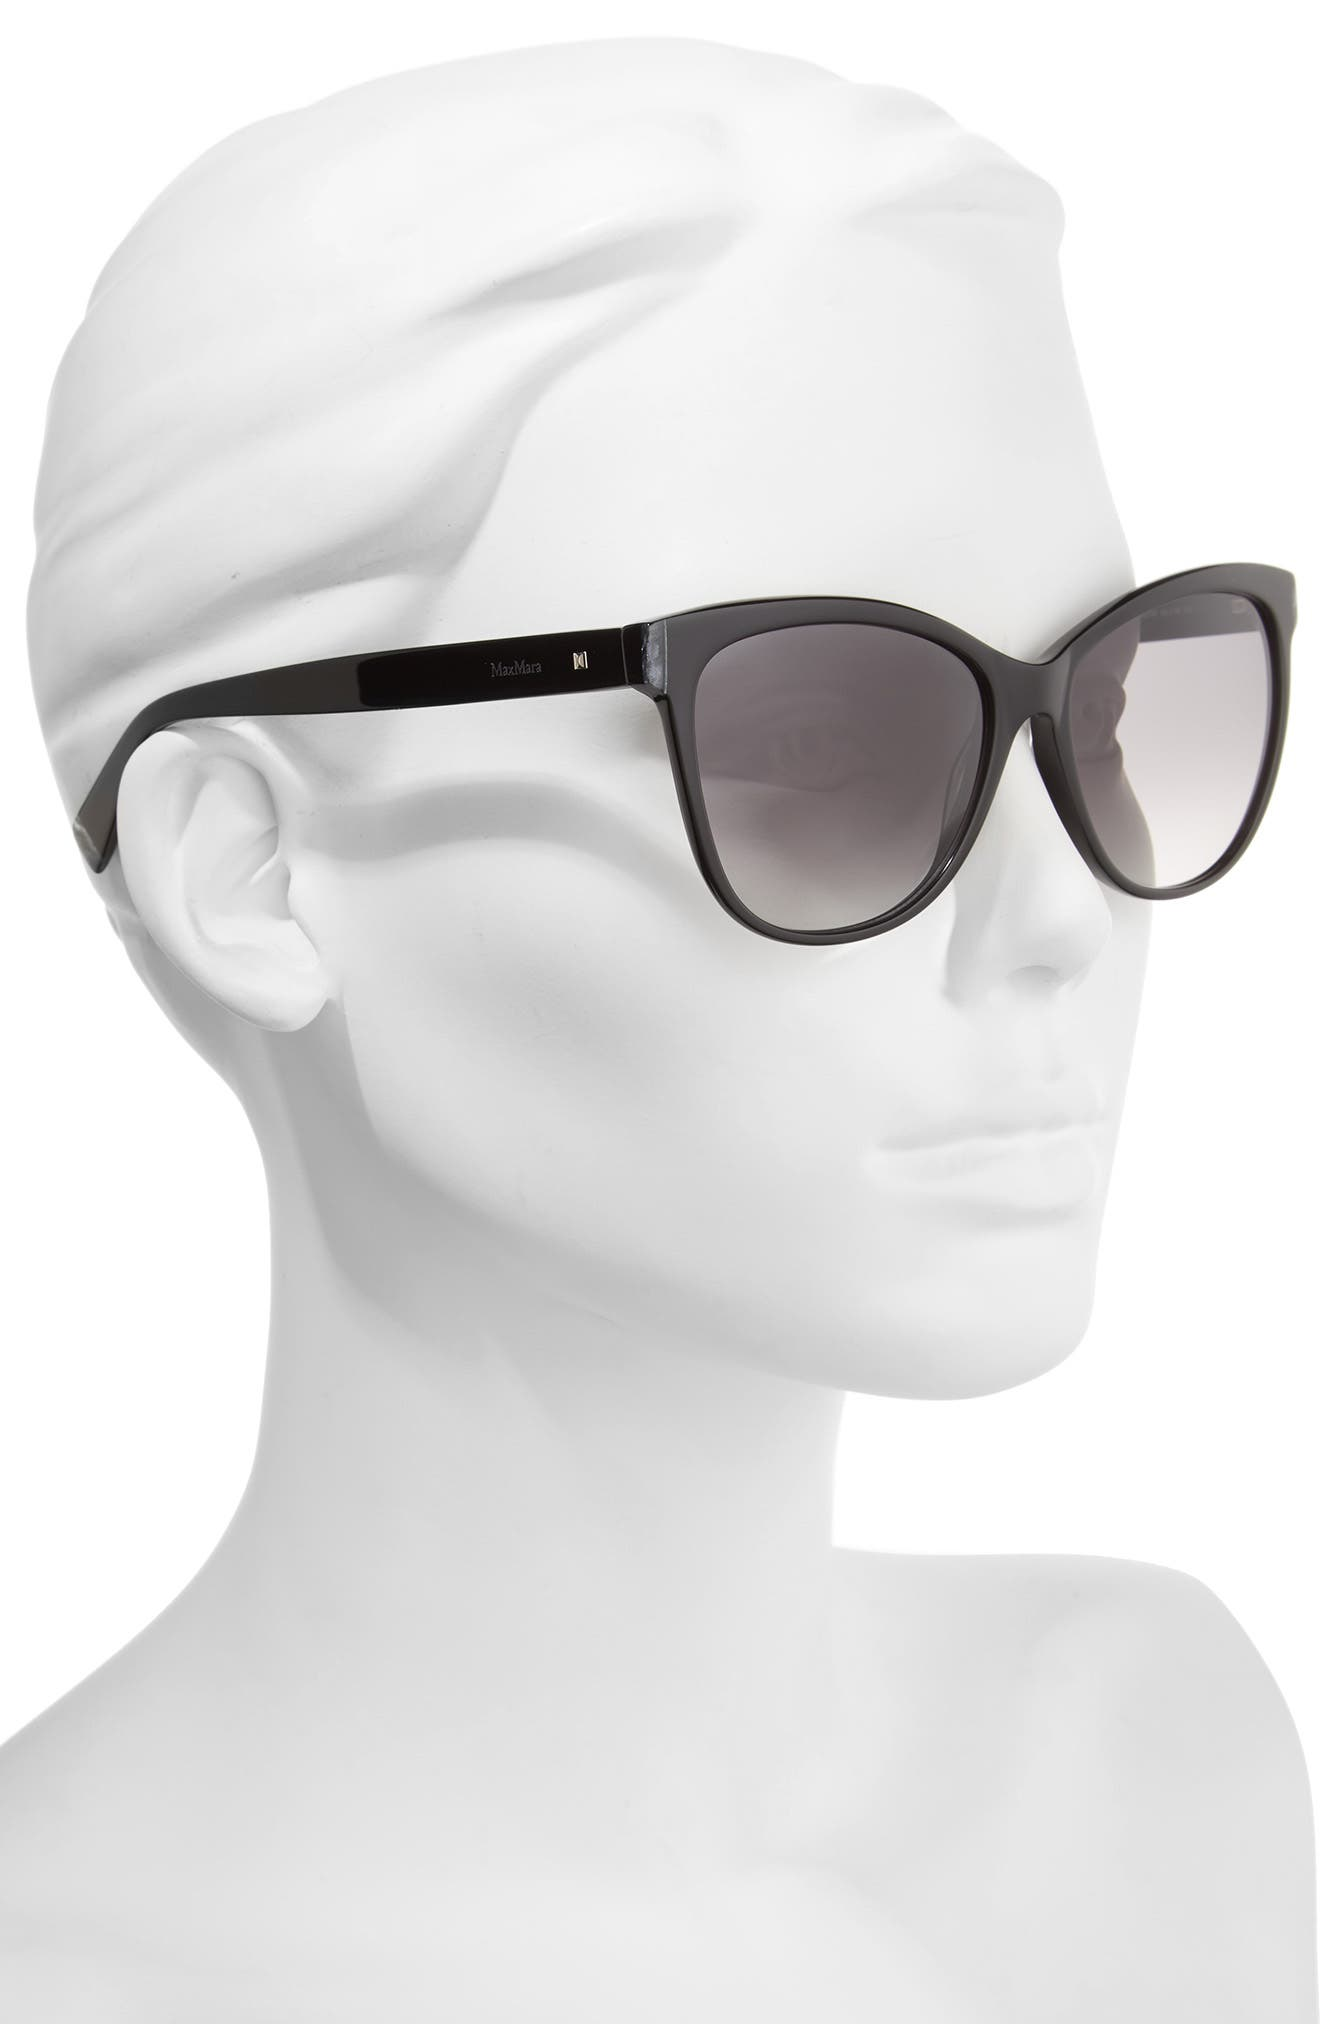 Thins 56mm Gradient Cat Eye Sunglasses,                             Alternate thumbnail 2, color,                             Black